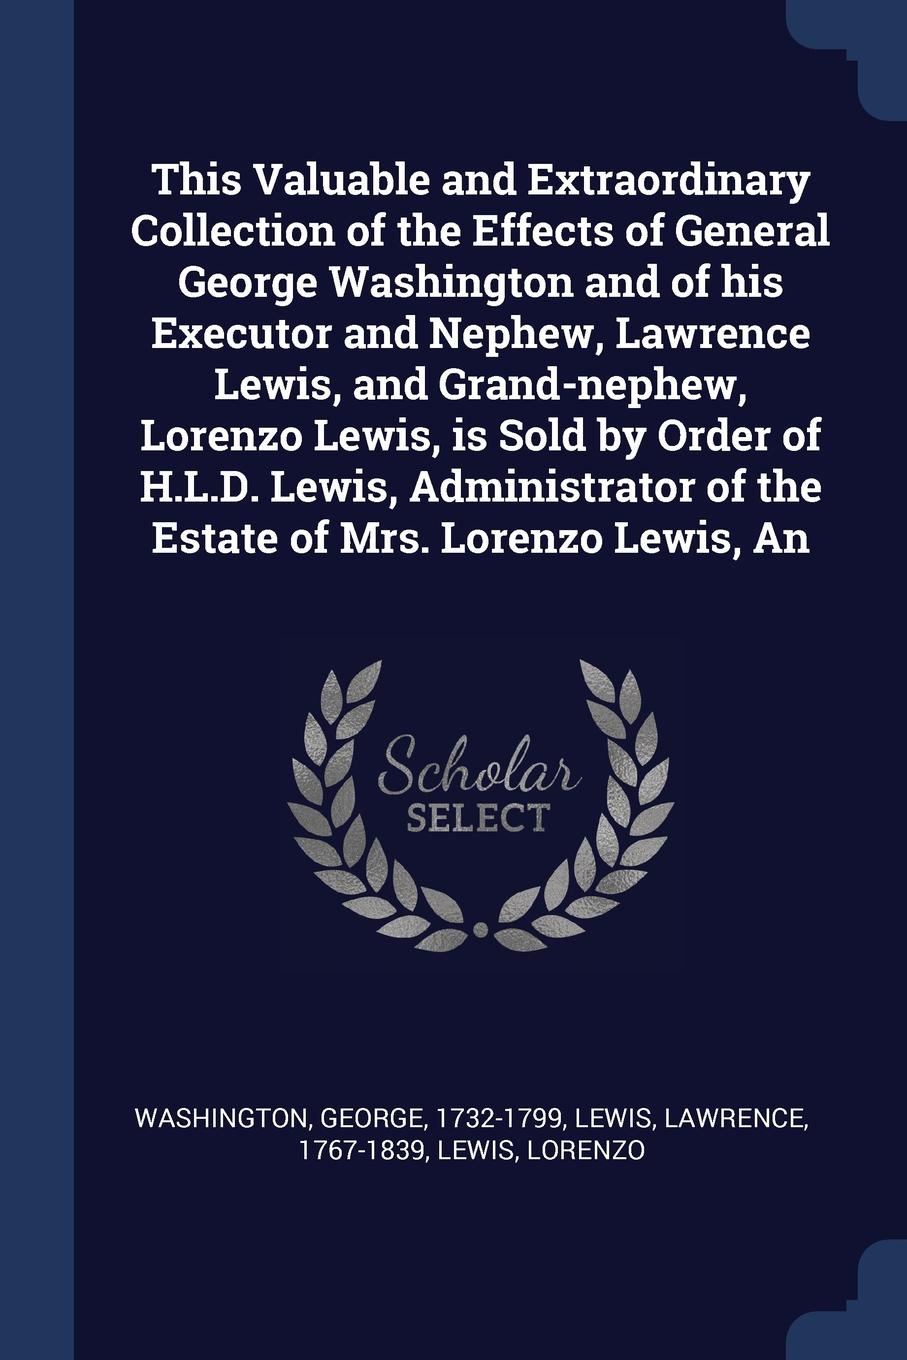 George Washington, Lawrence Lewis, Lorenzo Lewis This Valuable and Extraordinary Collection of the Effects of General George Washington and of his Executor and Nephew, Lawrence Lewis, and Grand-nephew, Lorenzo Lewis, is Sold by Order of H.L.D. Lewis, Administrator of the Estate of Mrs. Lorenzo L... george griffin lewis the mystery of the oriental rug